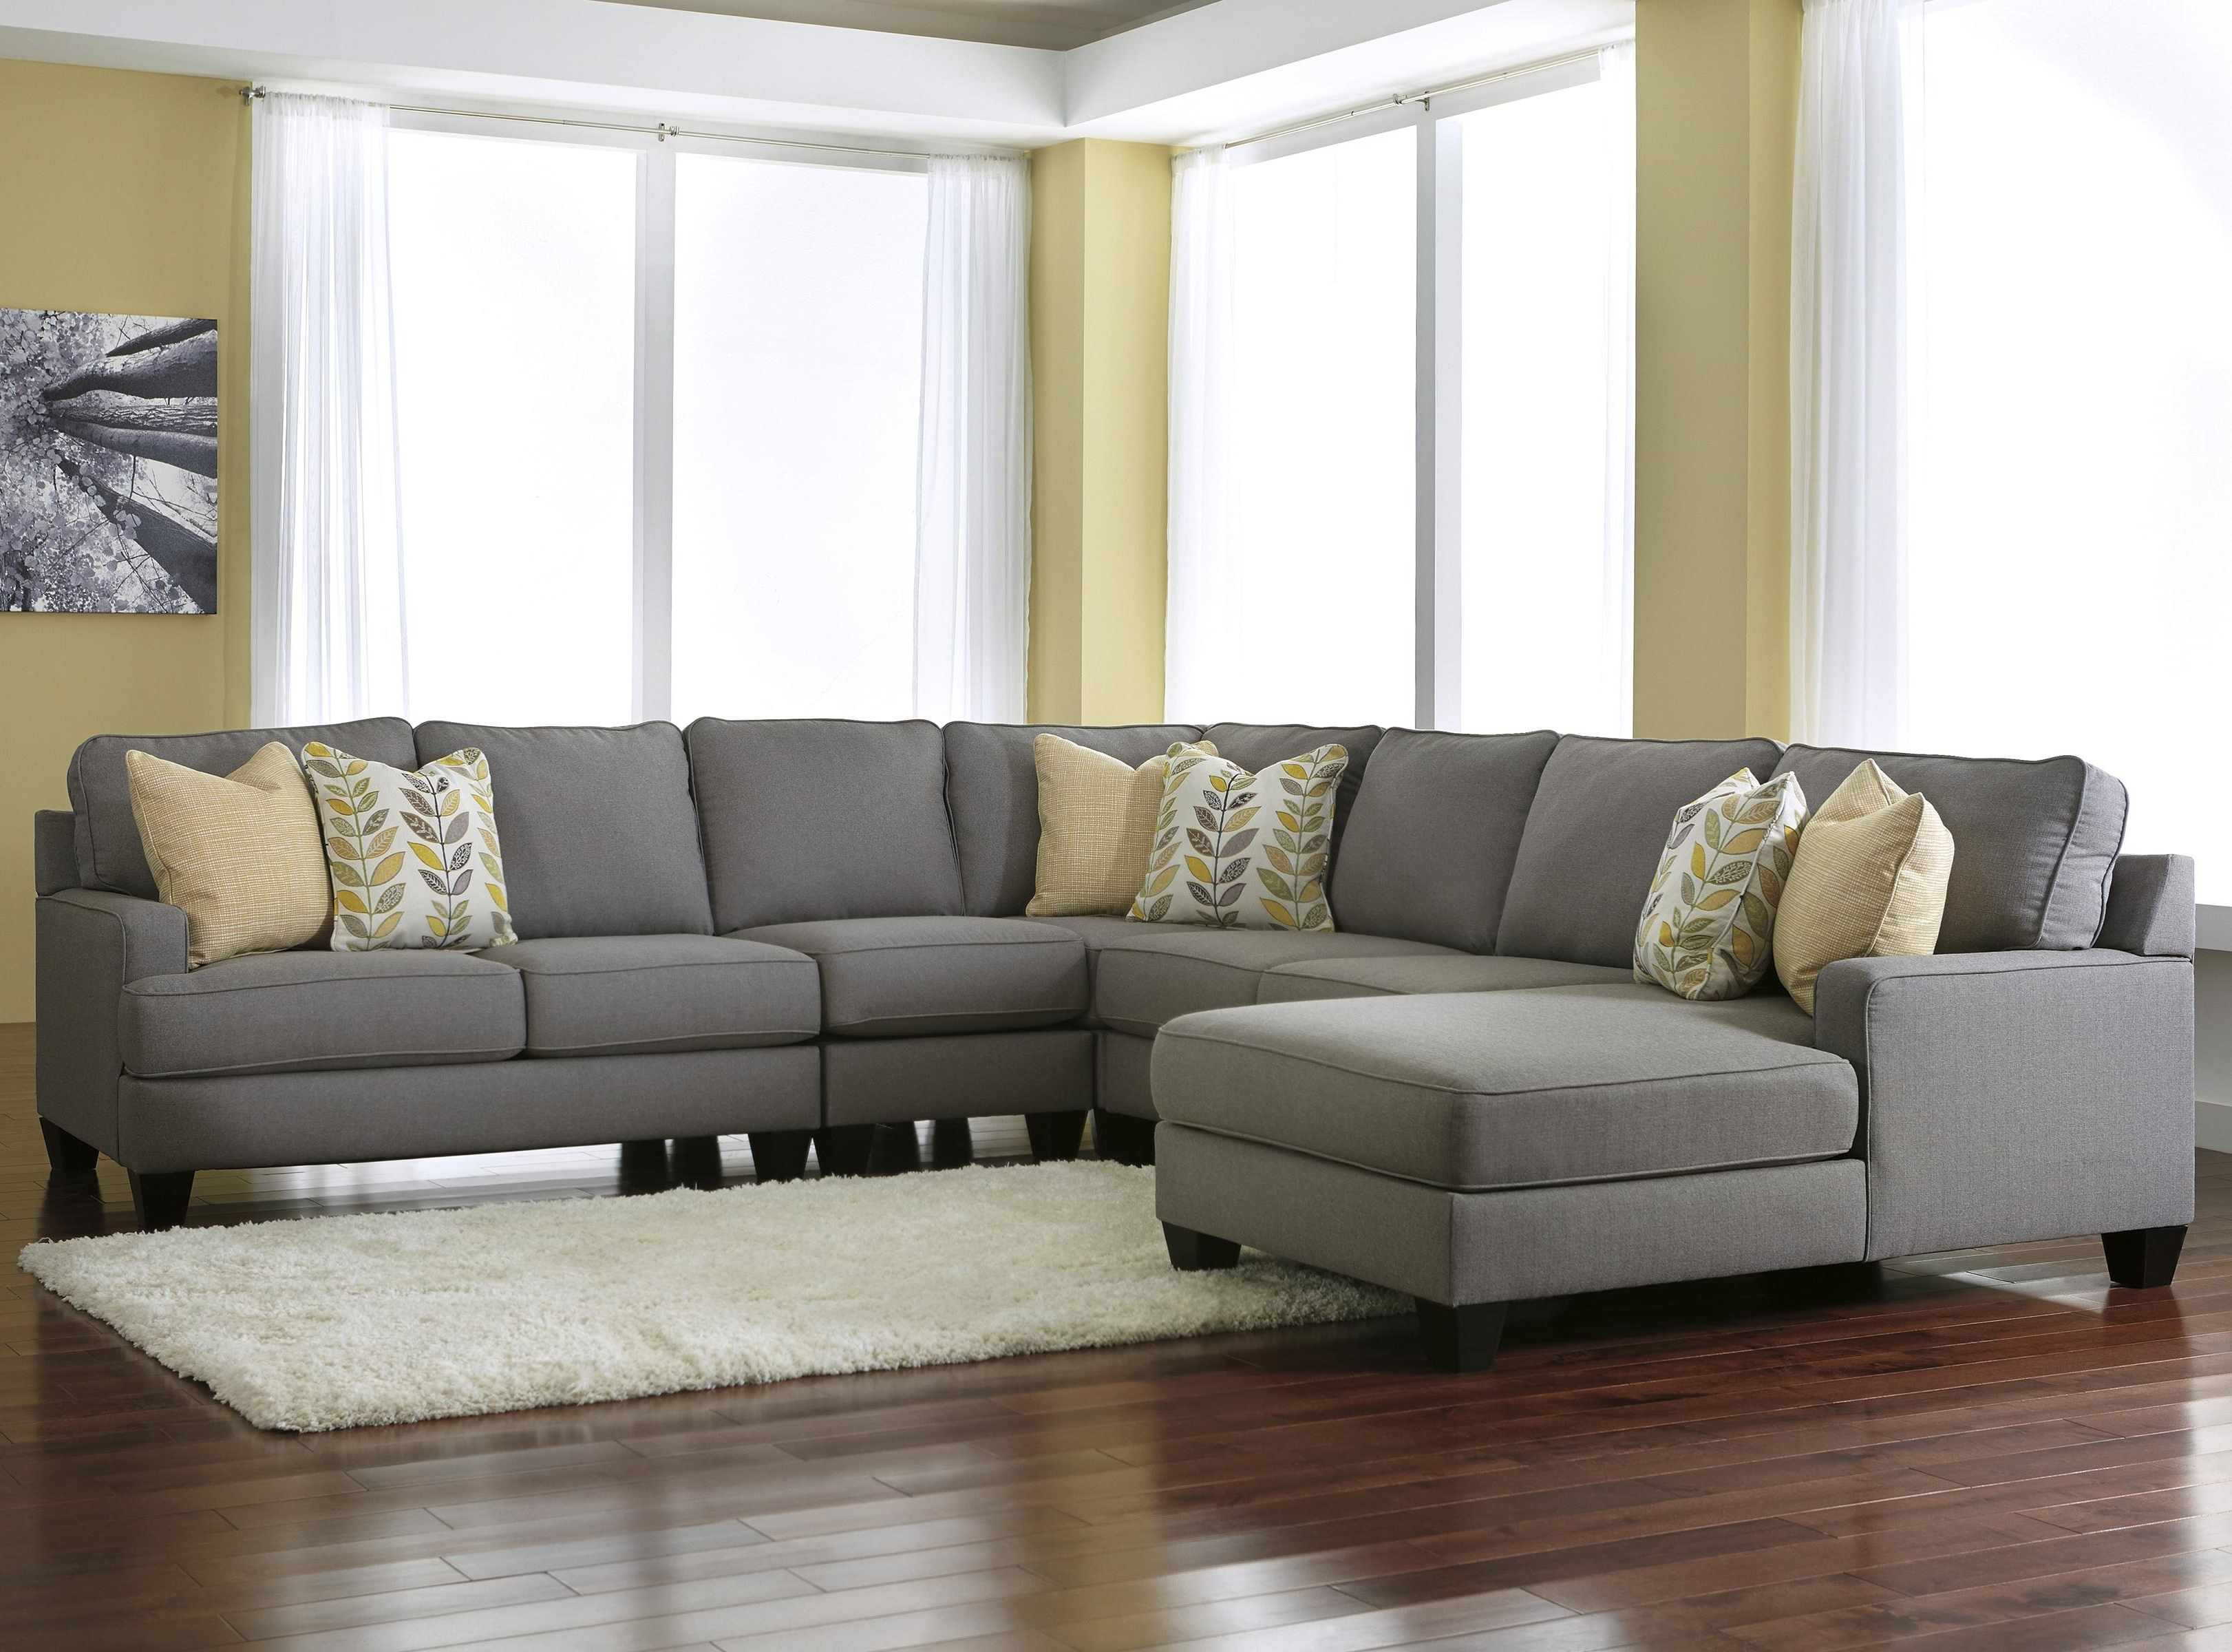 Signature Designashley Chamberly – Alloy Modern 5 Piece Throughout Most Recently Released Home Furniture Sectional Sofas (View 17 of 20)